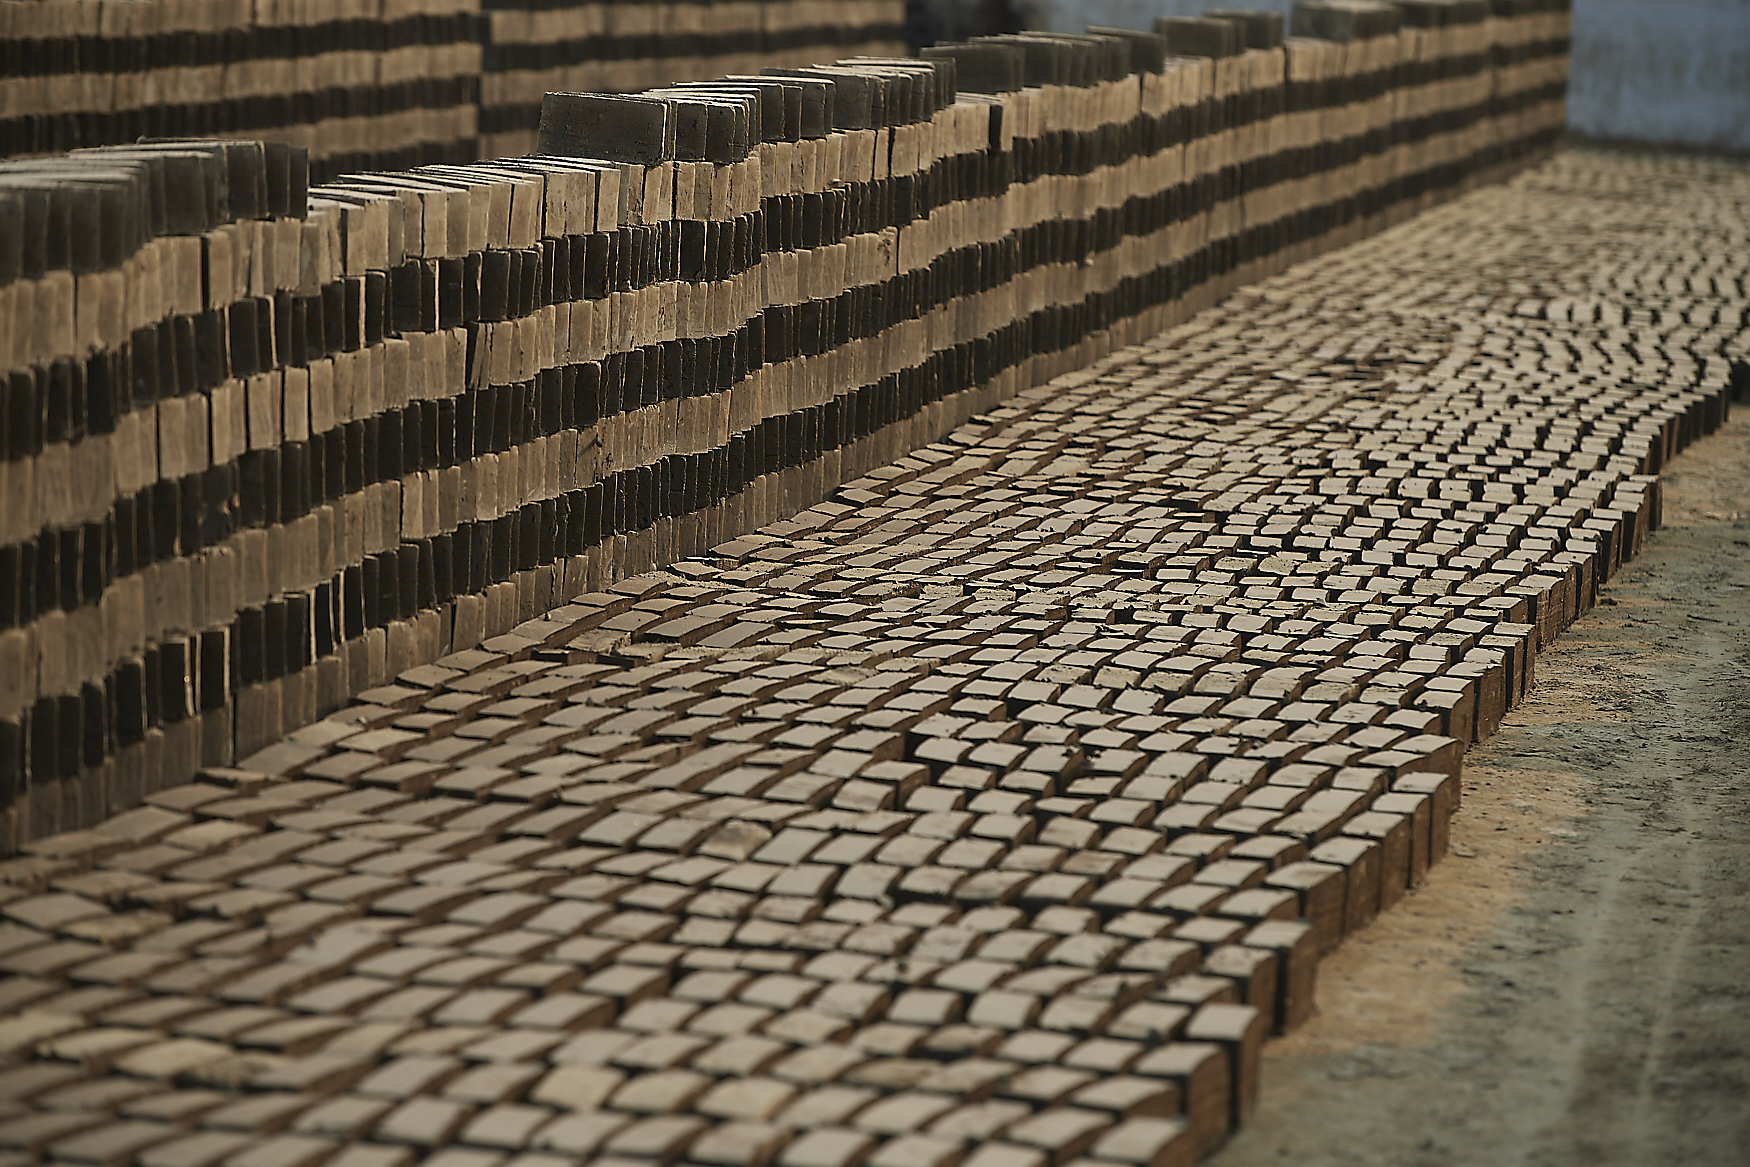 bricks laid to dry in the sun